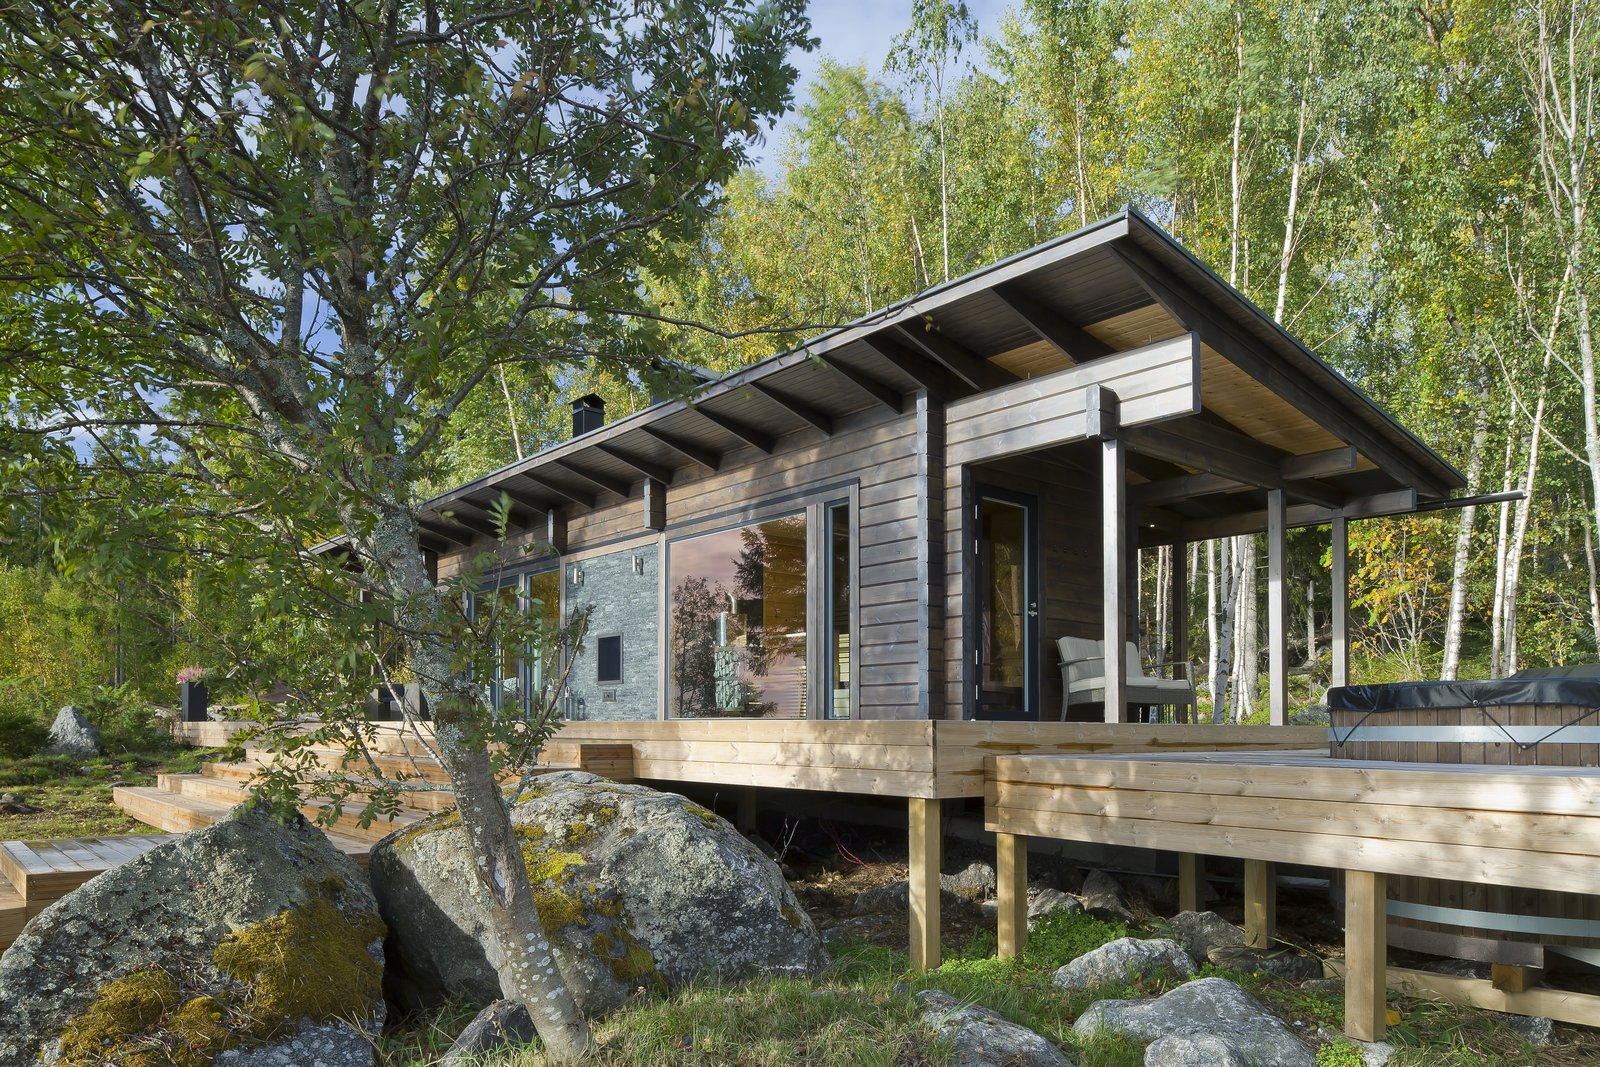 This wilderness sauna cabin in the west coast of Finland was built with 112-millimeter thick squrae logs, and has a 1,028-square-foot outdoor terrace.